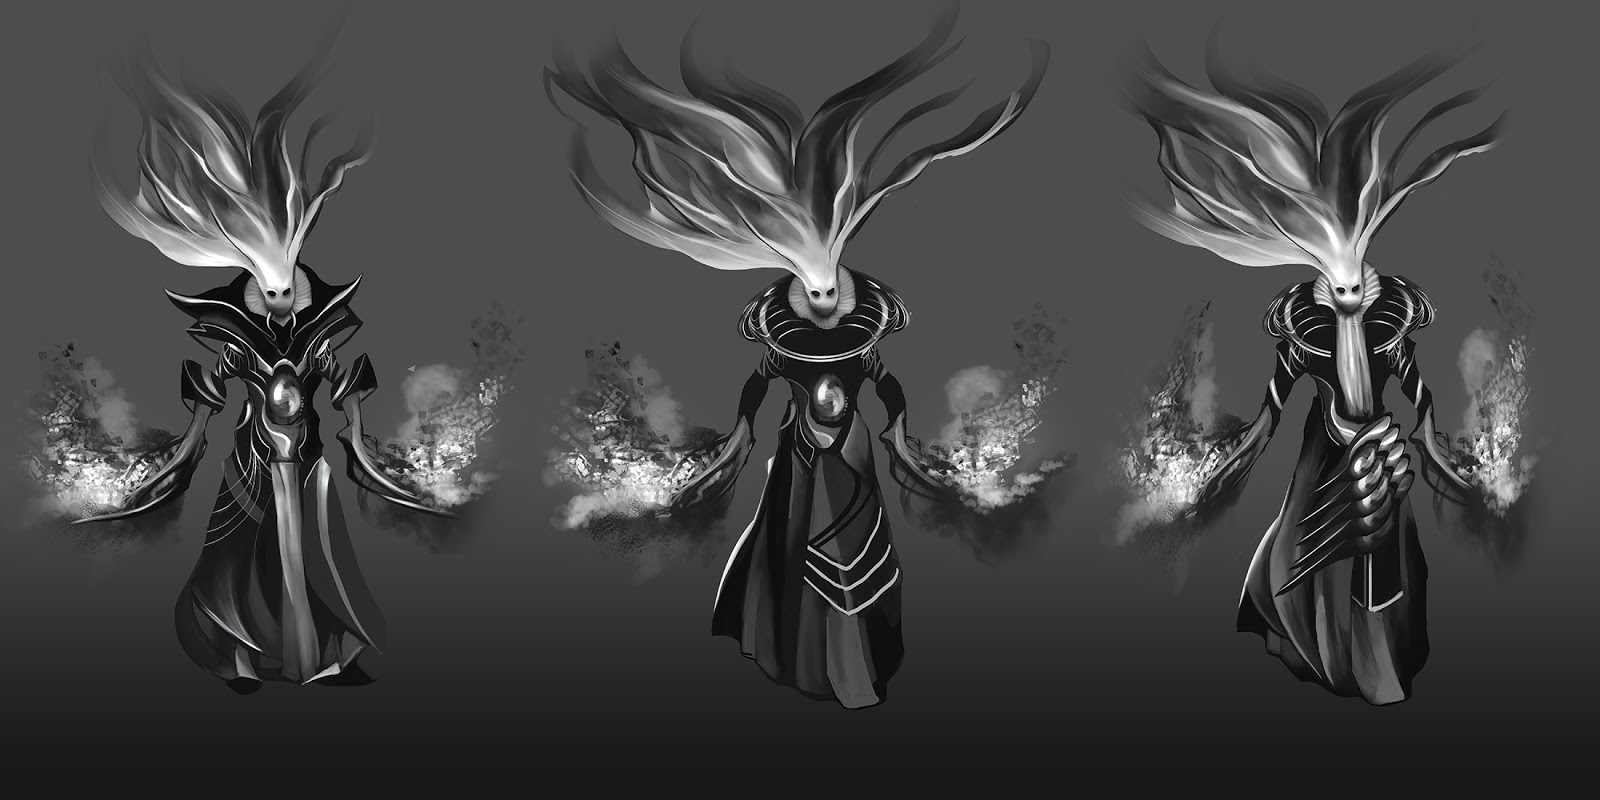 """[Horante] """" Mecha-shaman reloaded """" - Page 2 NicolasCamiade_Assignment03_IterationMage01"""